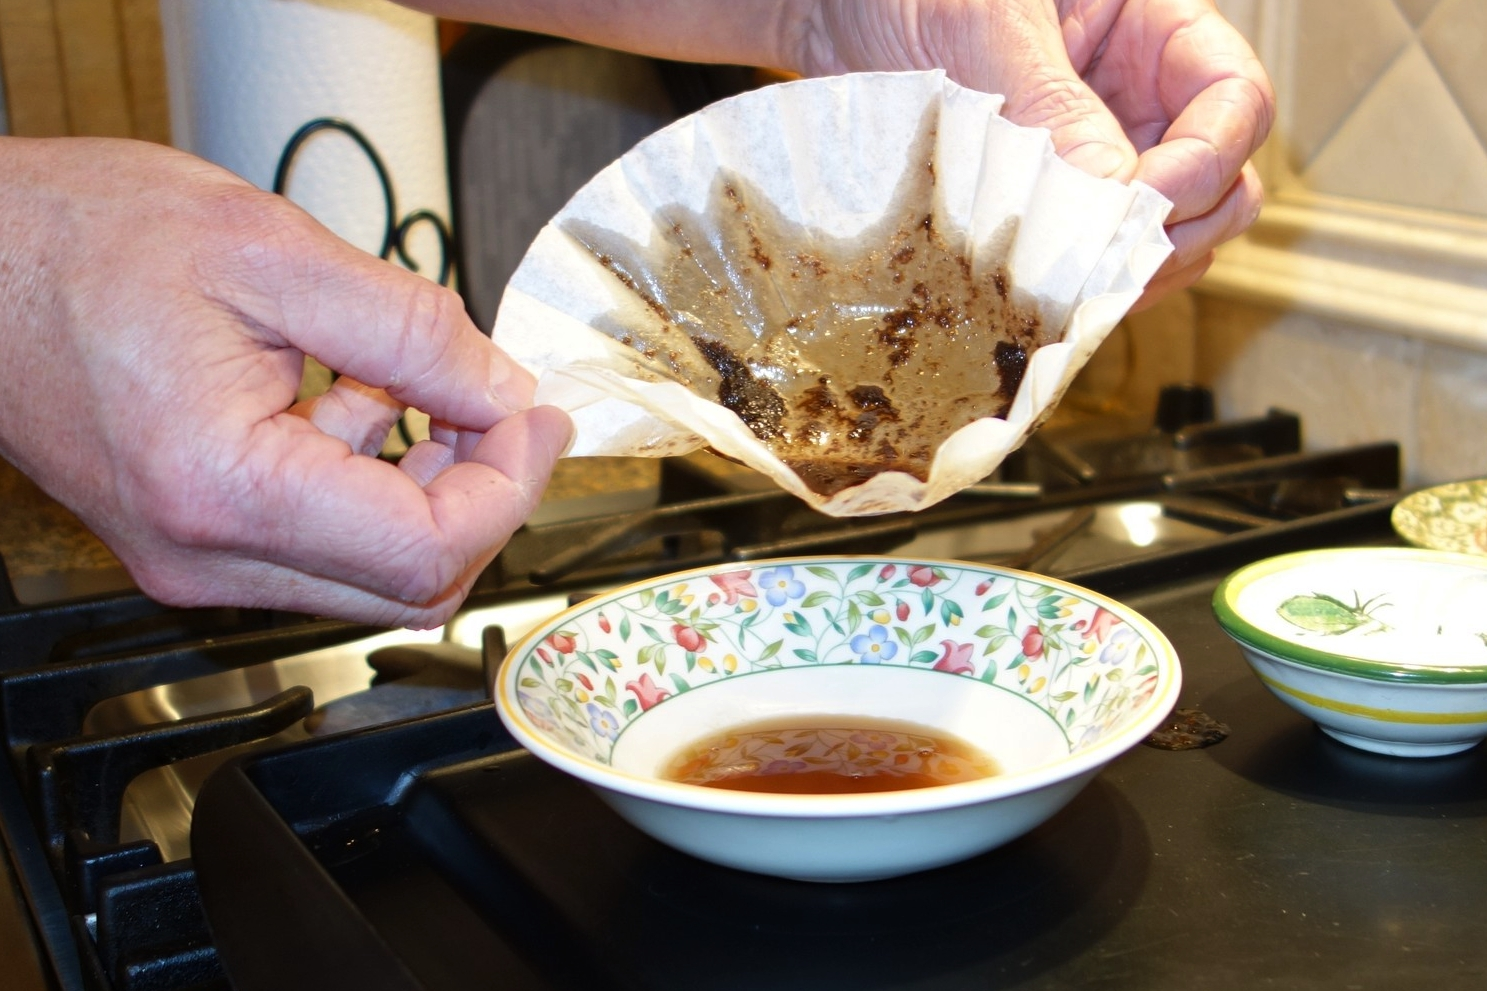 Strain the foam out by pouring the mixture through a coffee filter into a bowl. This will take a couple of minutes to get the clear brown butter through the filter.